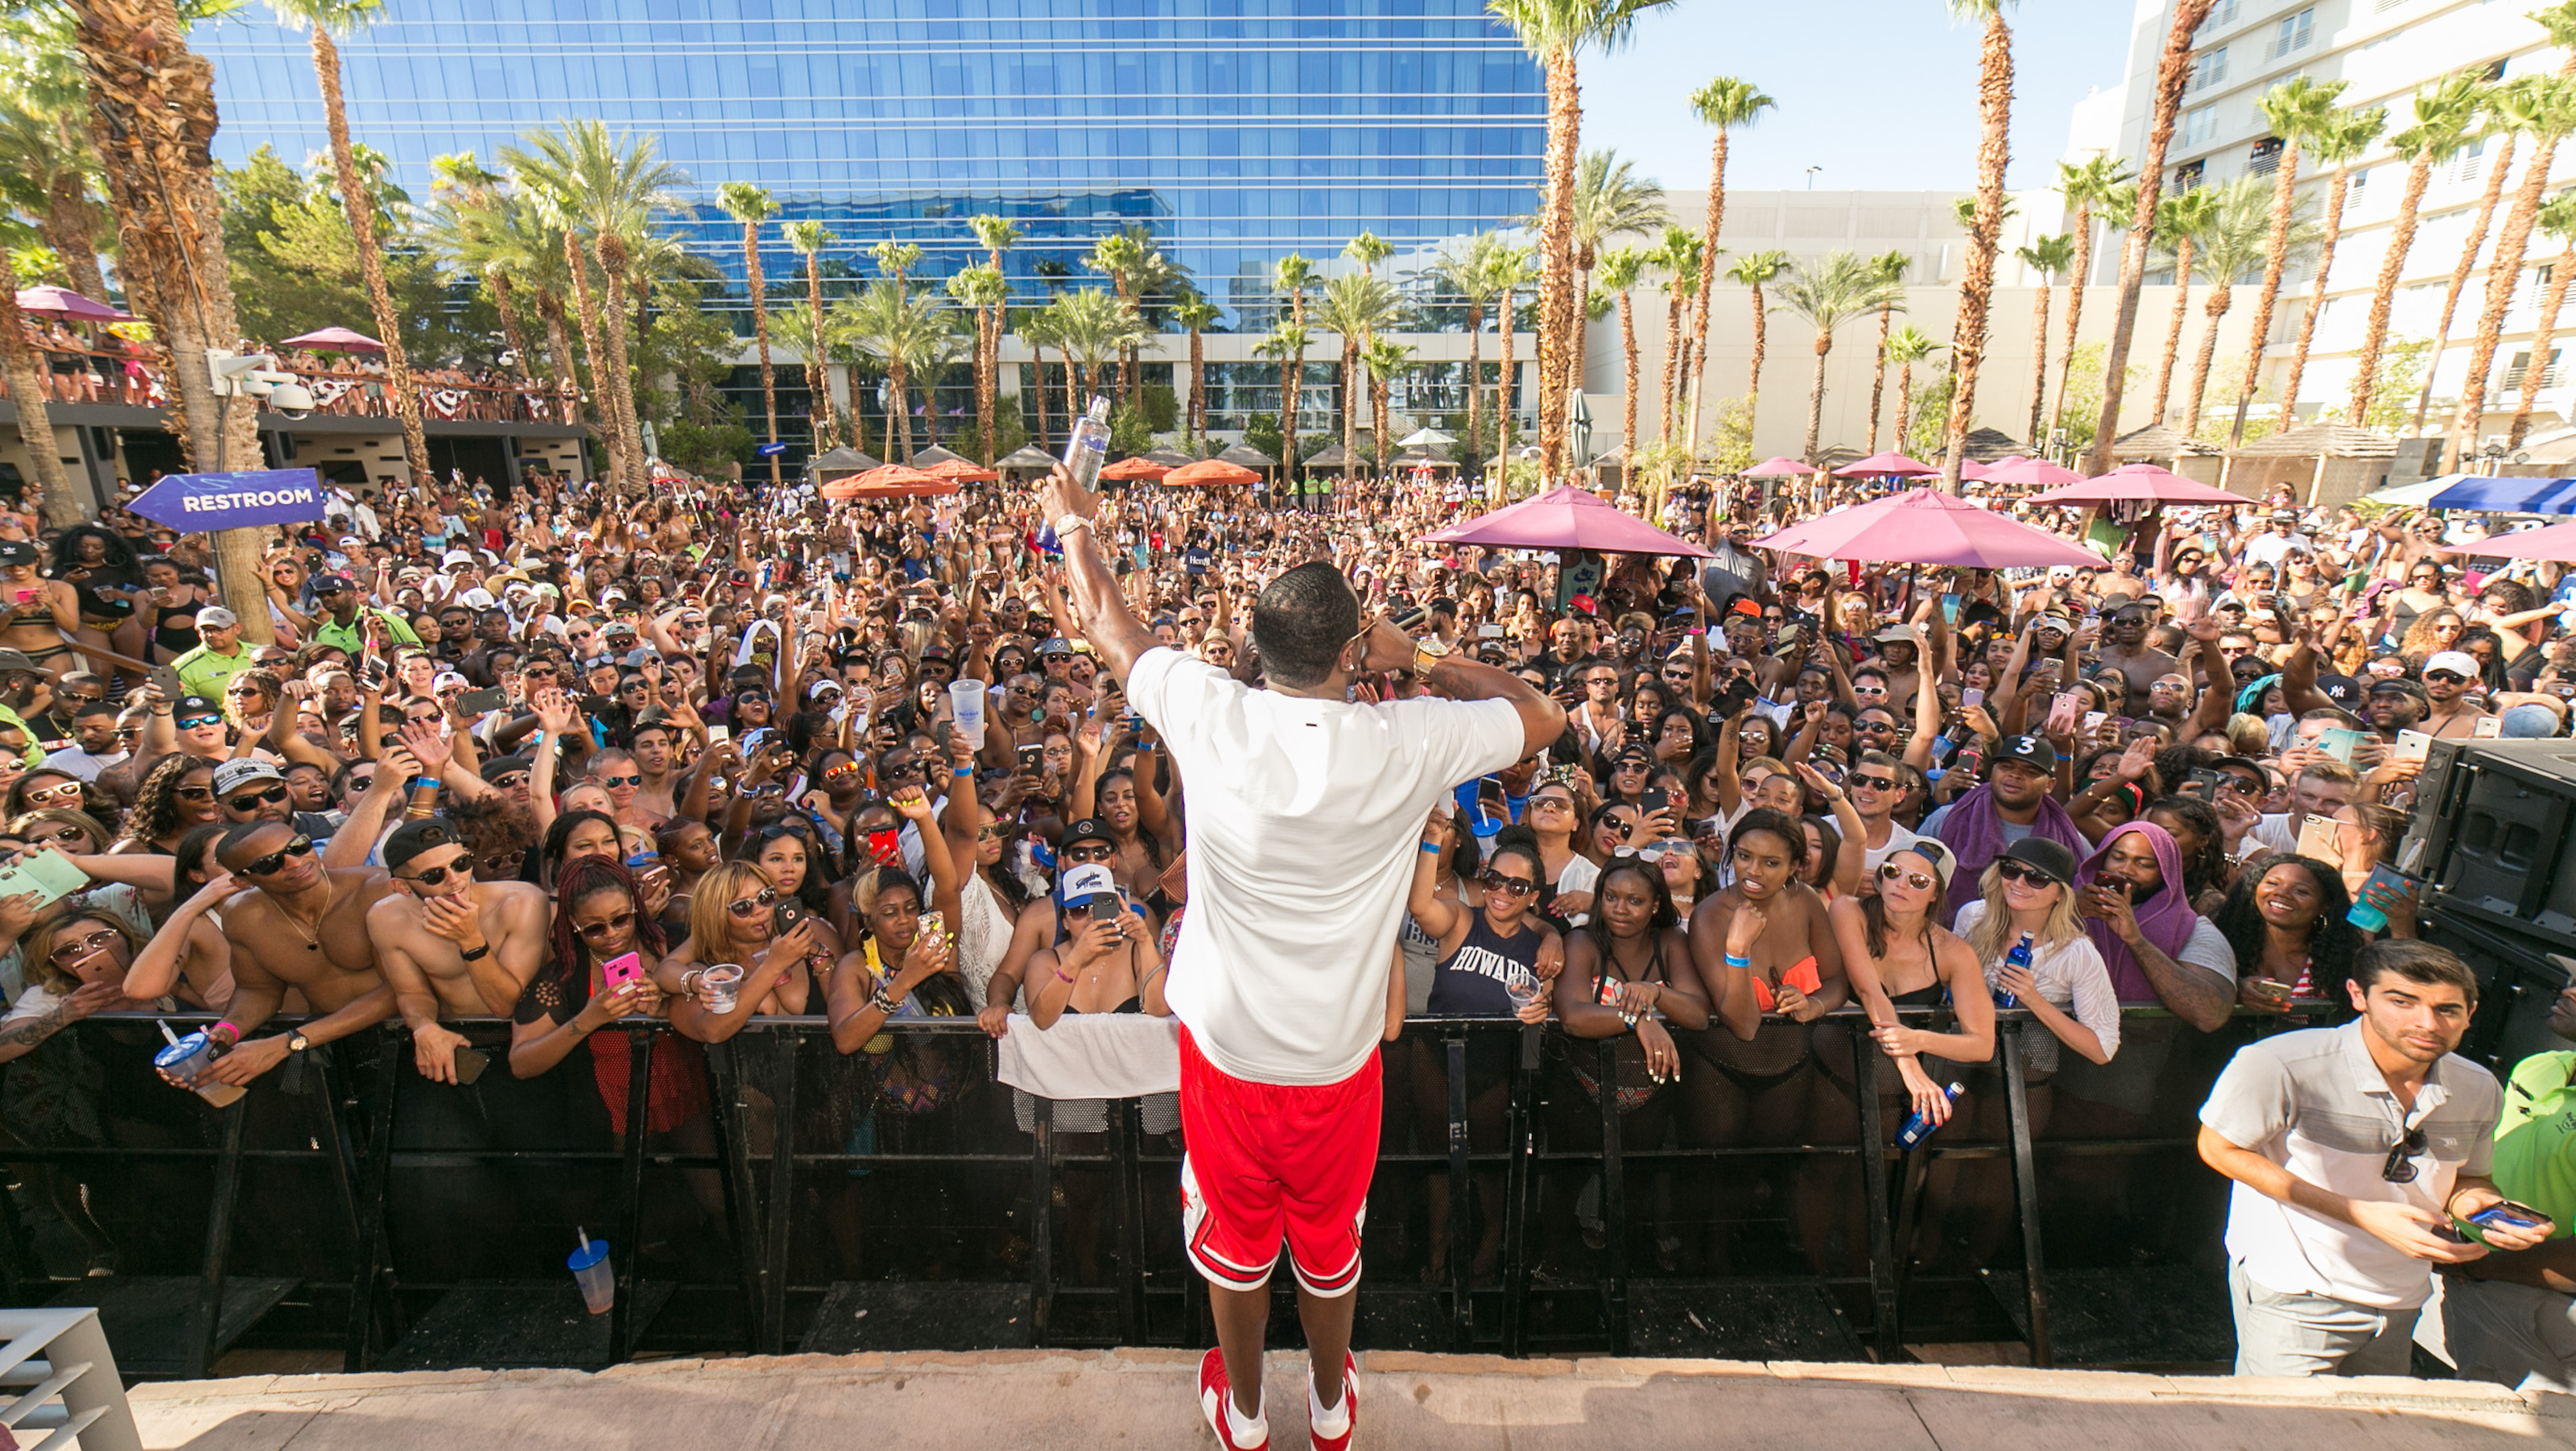 LAS VEGAS, NV - JULY 1: Puff Daddy Hosts at Rehab Beach Club at The Hard Rock Hotel & Casino in Las Vegas, Nevada on July 1, 2017. Credit:  GDP Photos/MediaPunch/IPX